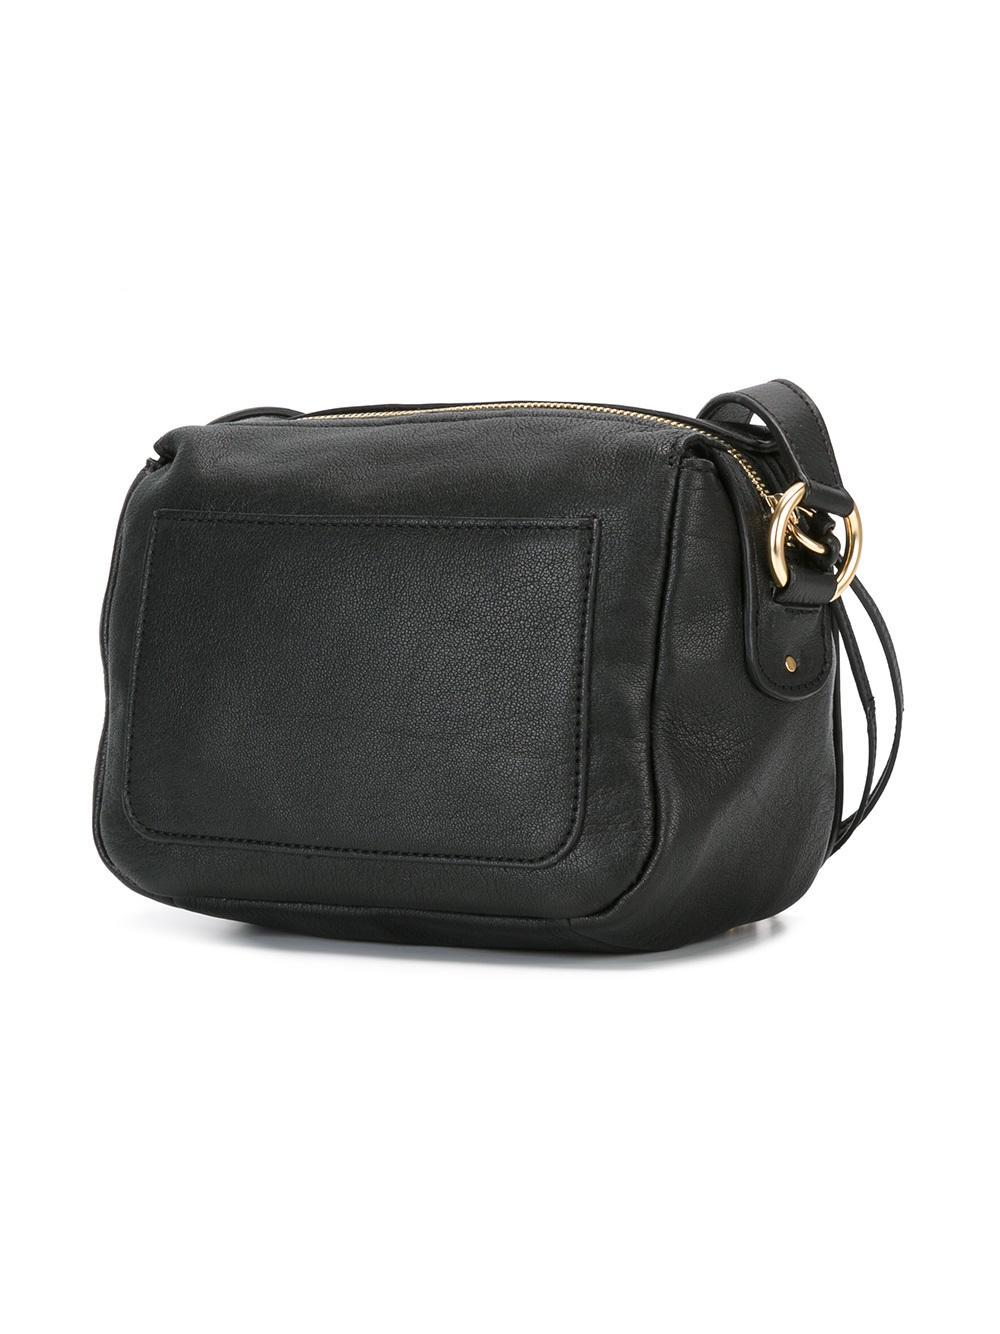 See By Chloé Leather Lois Crossbody Bag in Black